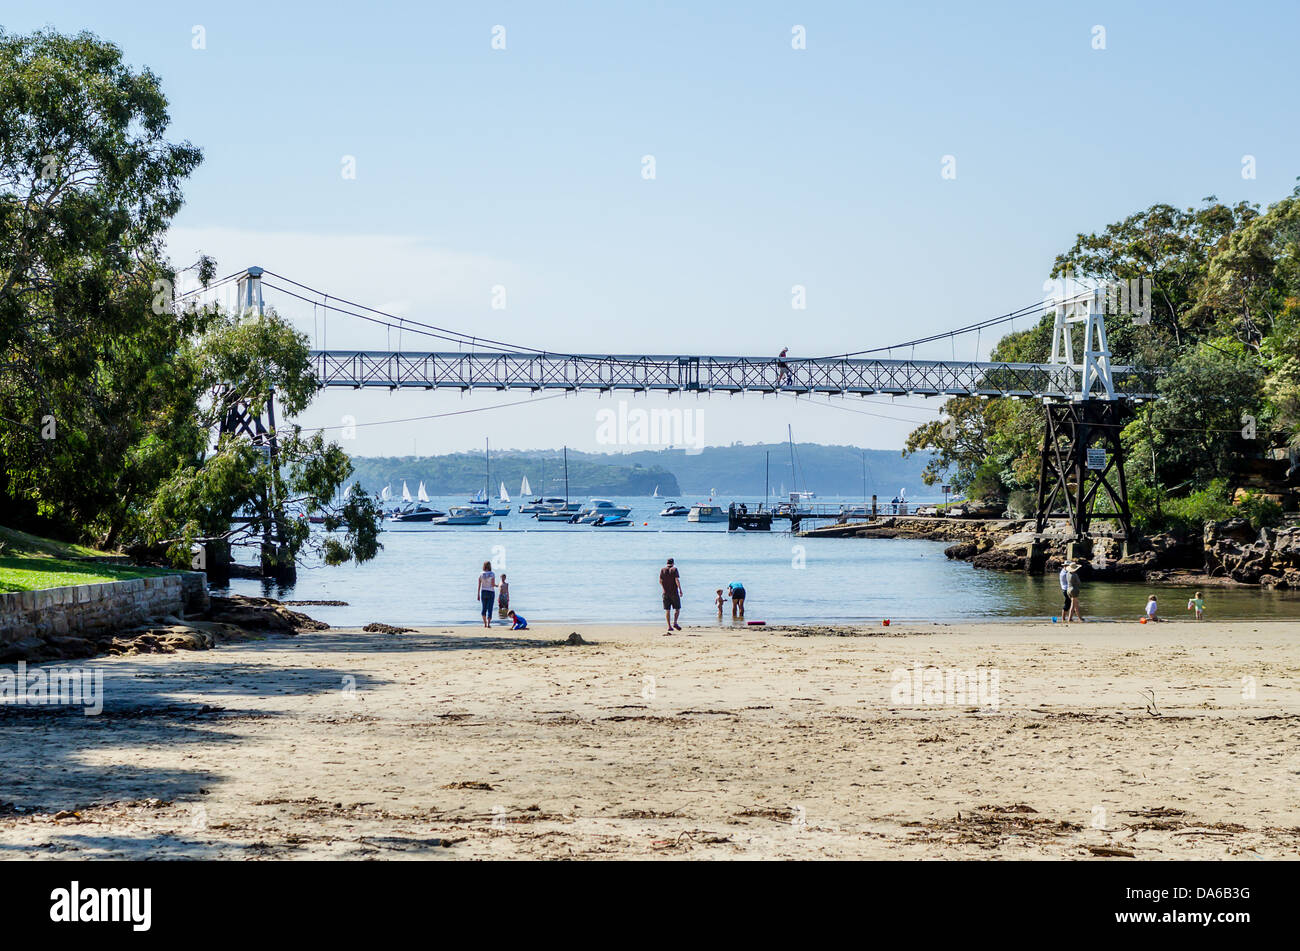 Parsley Bay in Sydney with its cove, pedestrian bridge, beach and lawned reserve. - Stock Image